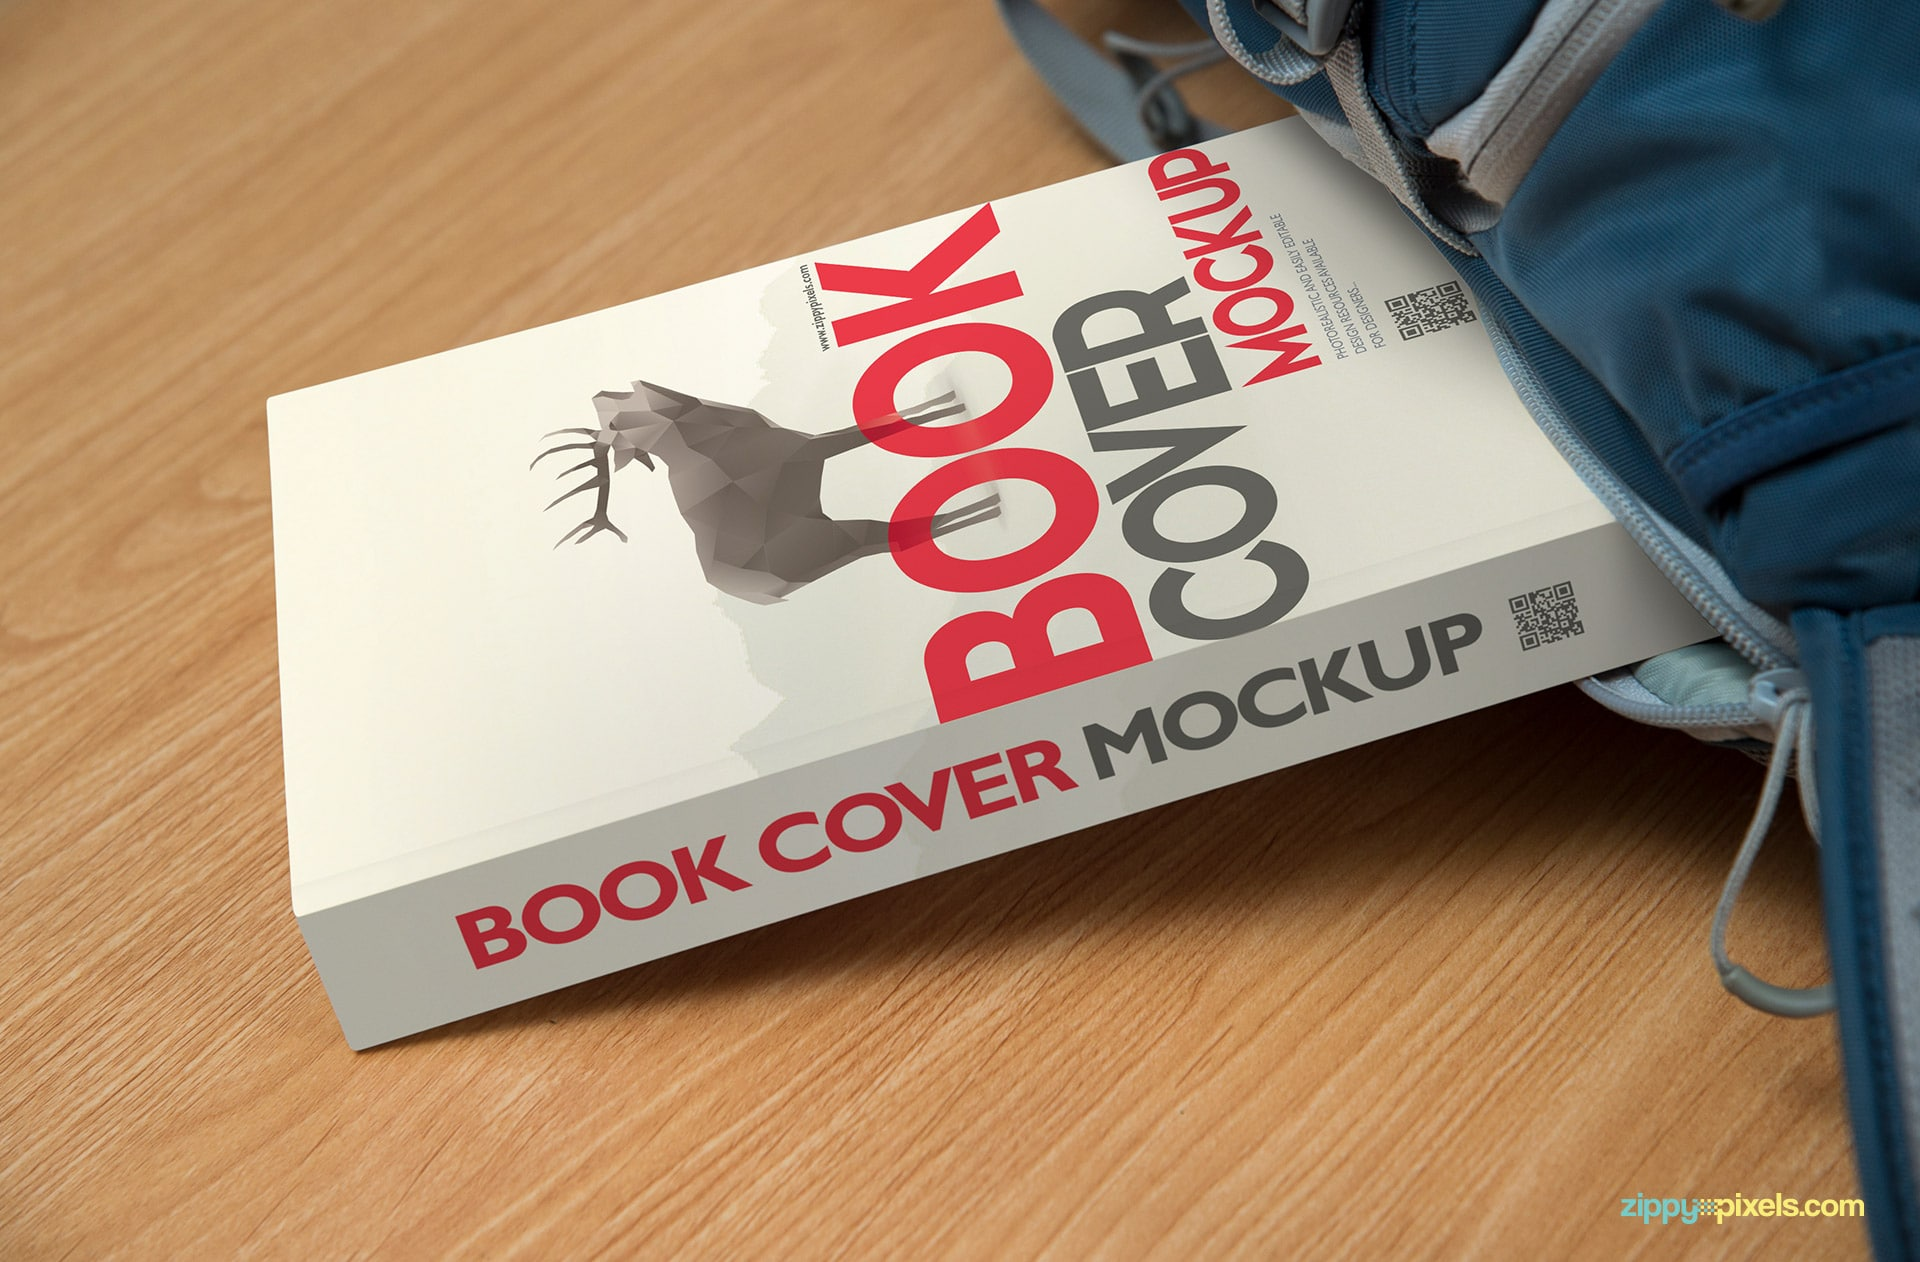 Awesome book mockup to showcase front cover design in zoomed shot of paperback book in bag